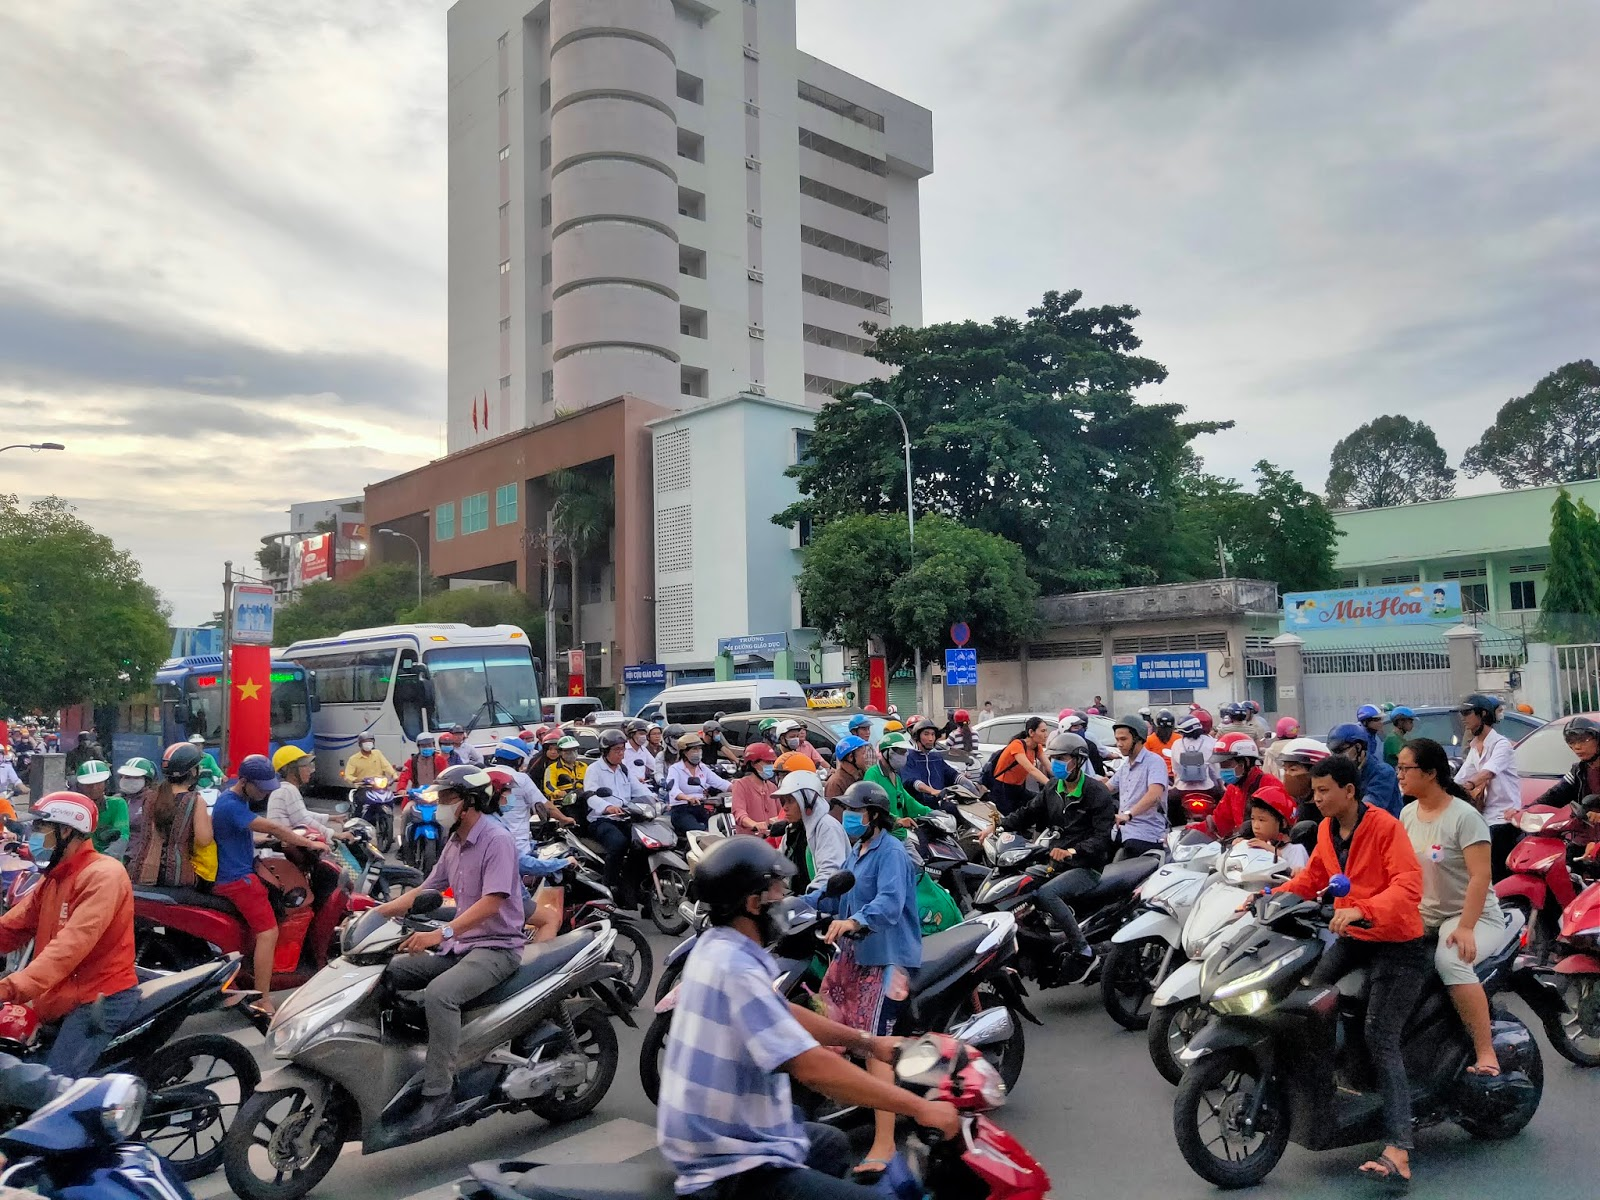 traffic chaos in saigon